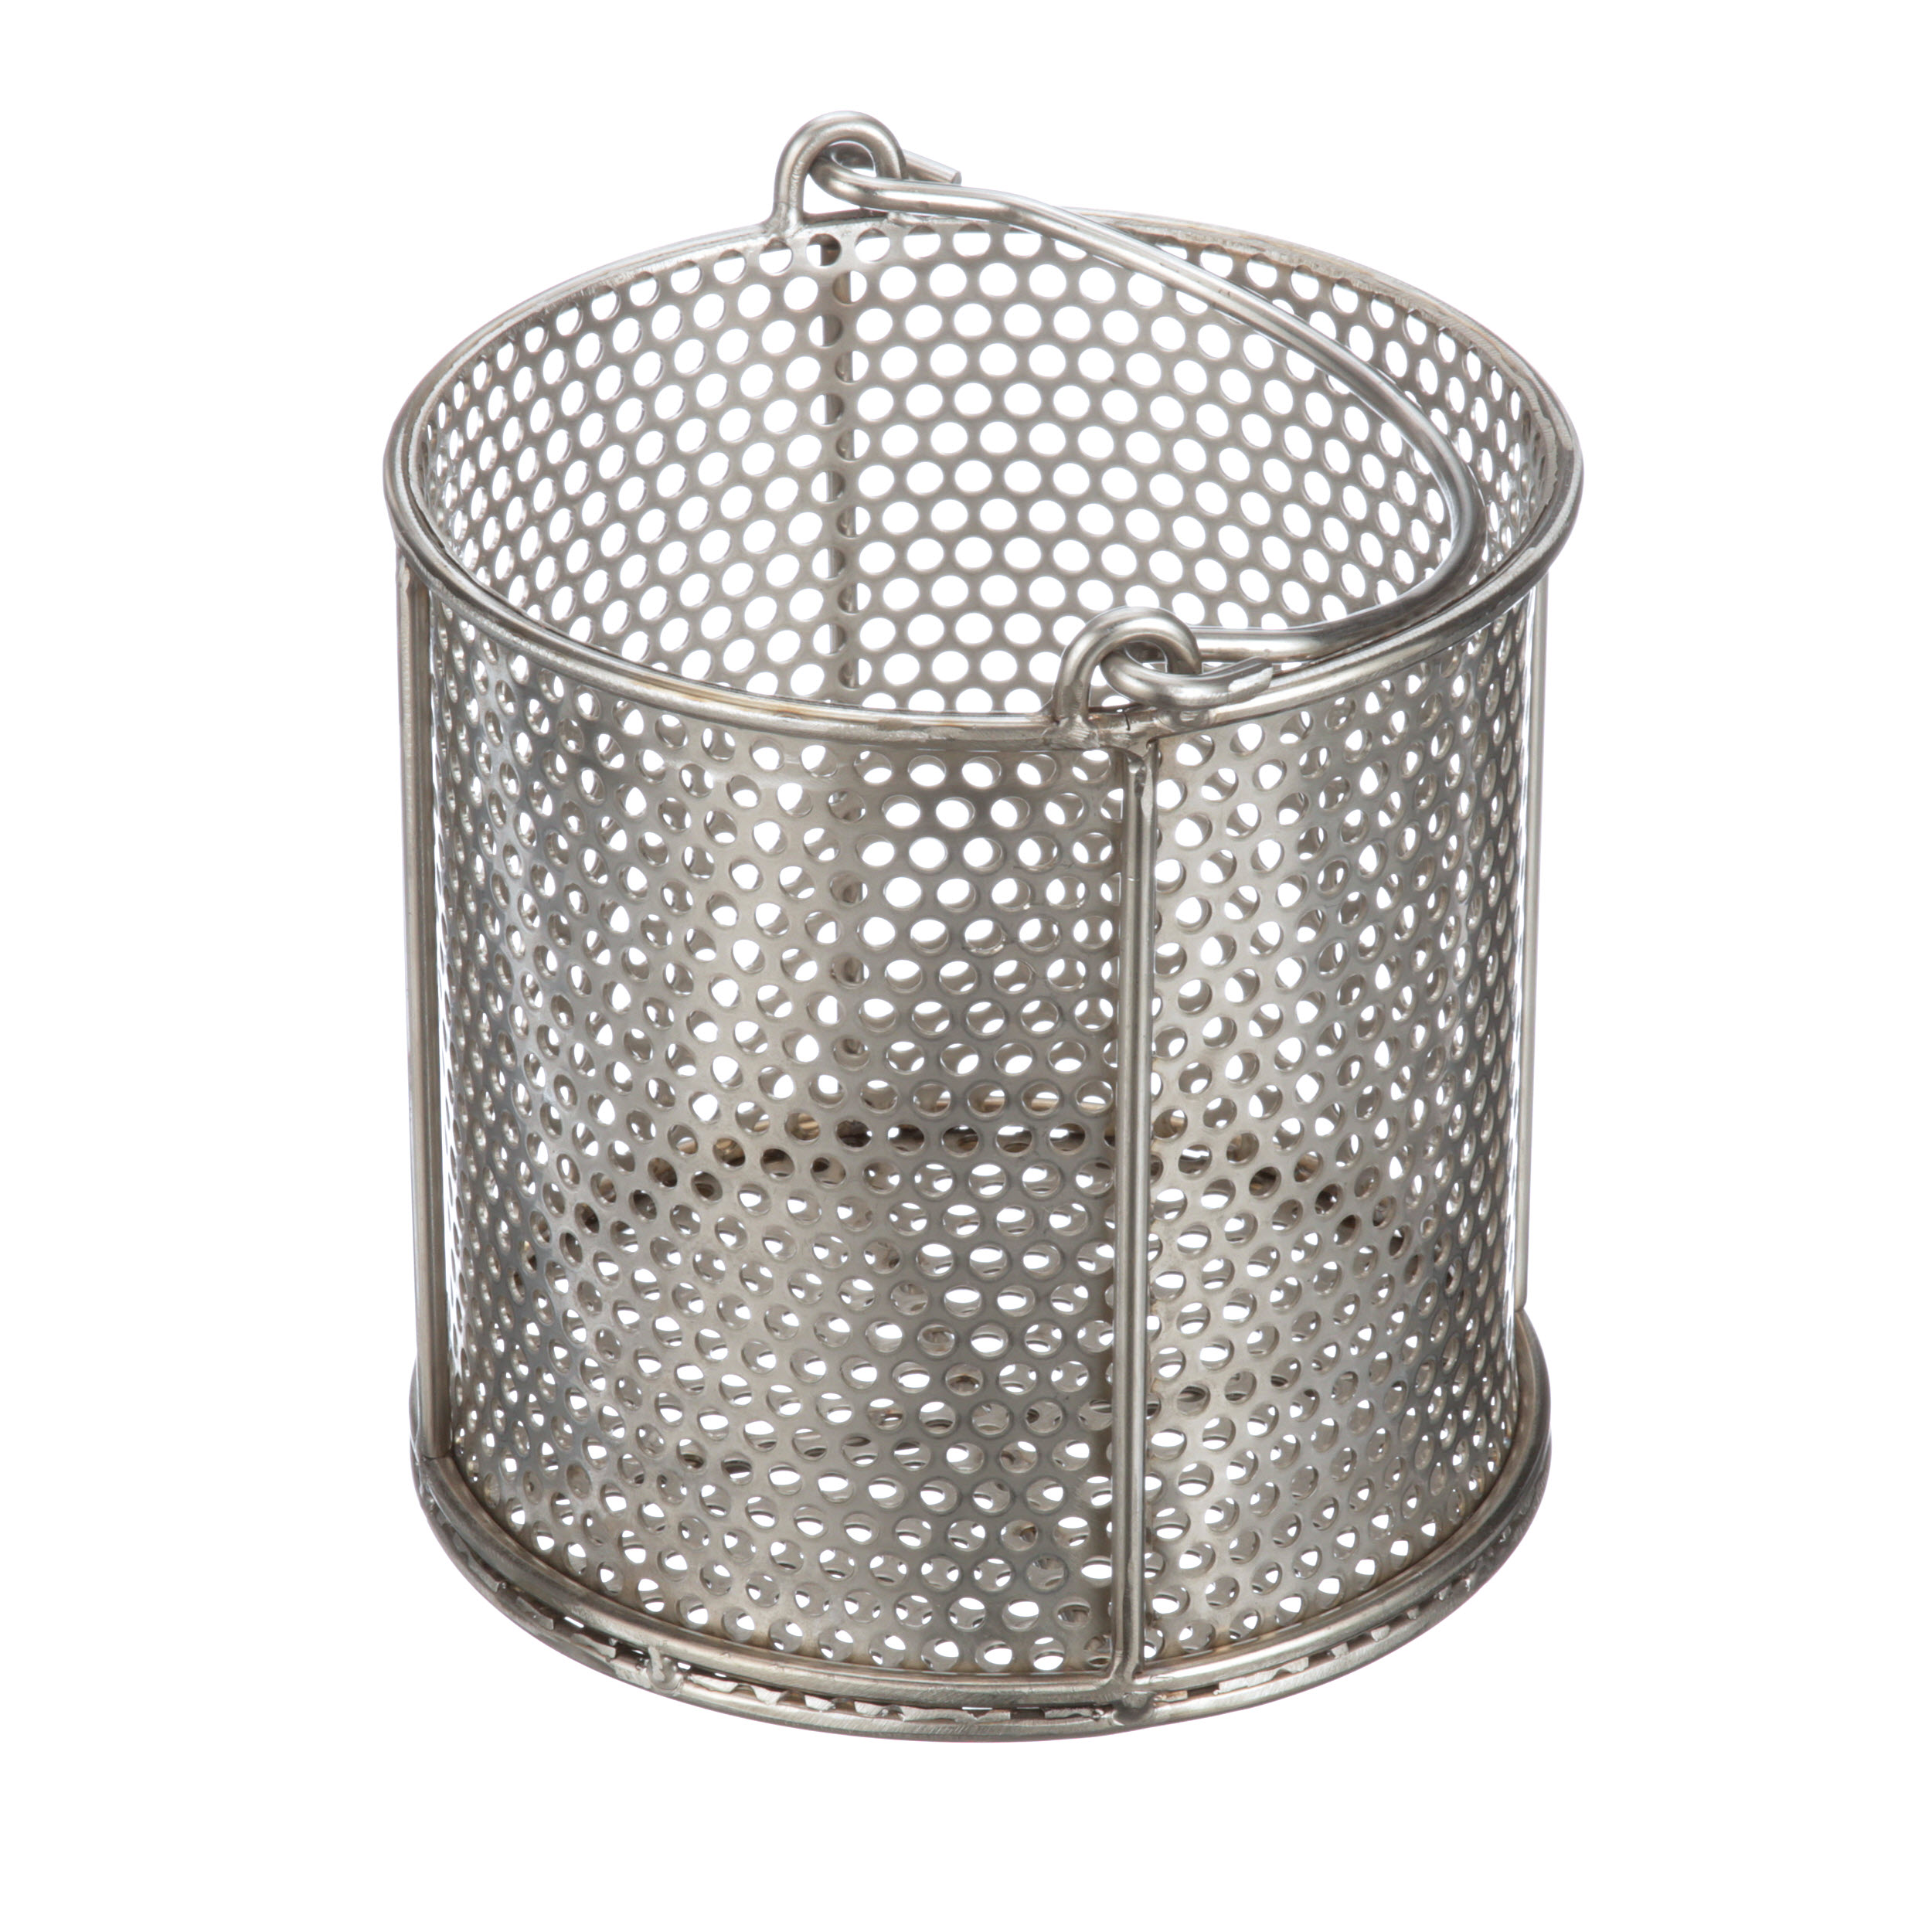 Custom Stainless Steel Baskets for Spin Drying